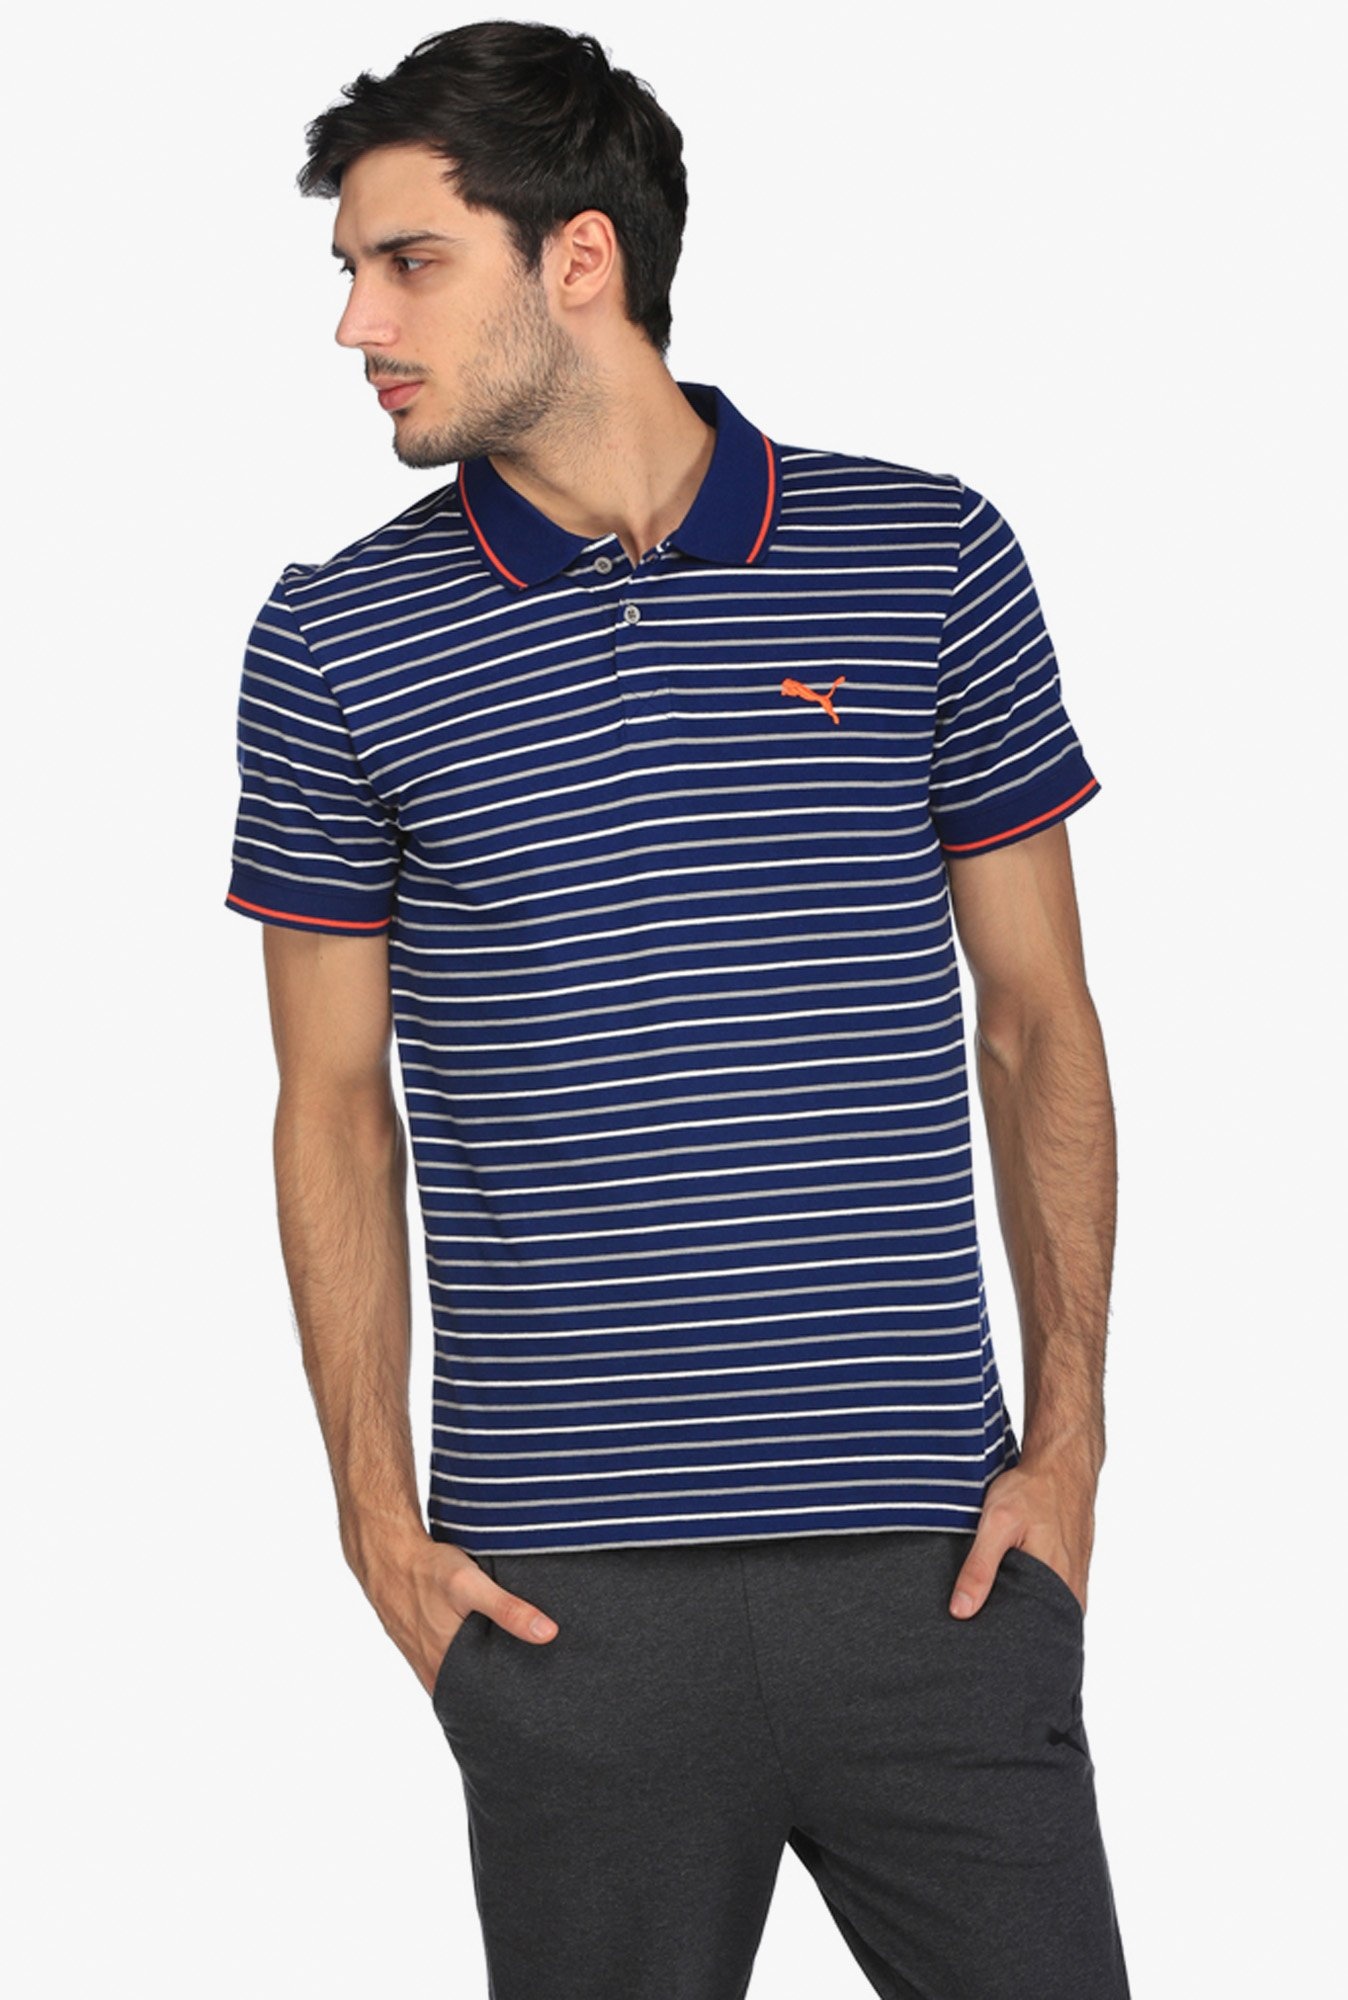 4208be81 Buy Puma Navy Slim Fit Striped Polo T-Shirt for Men Online @ Tata ...